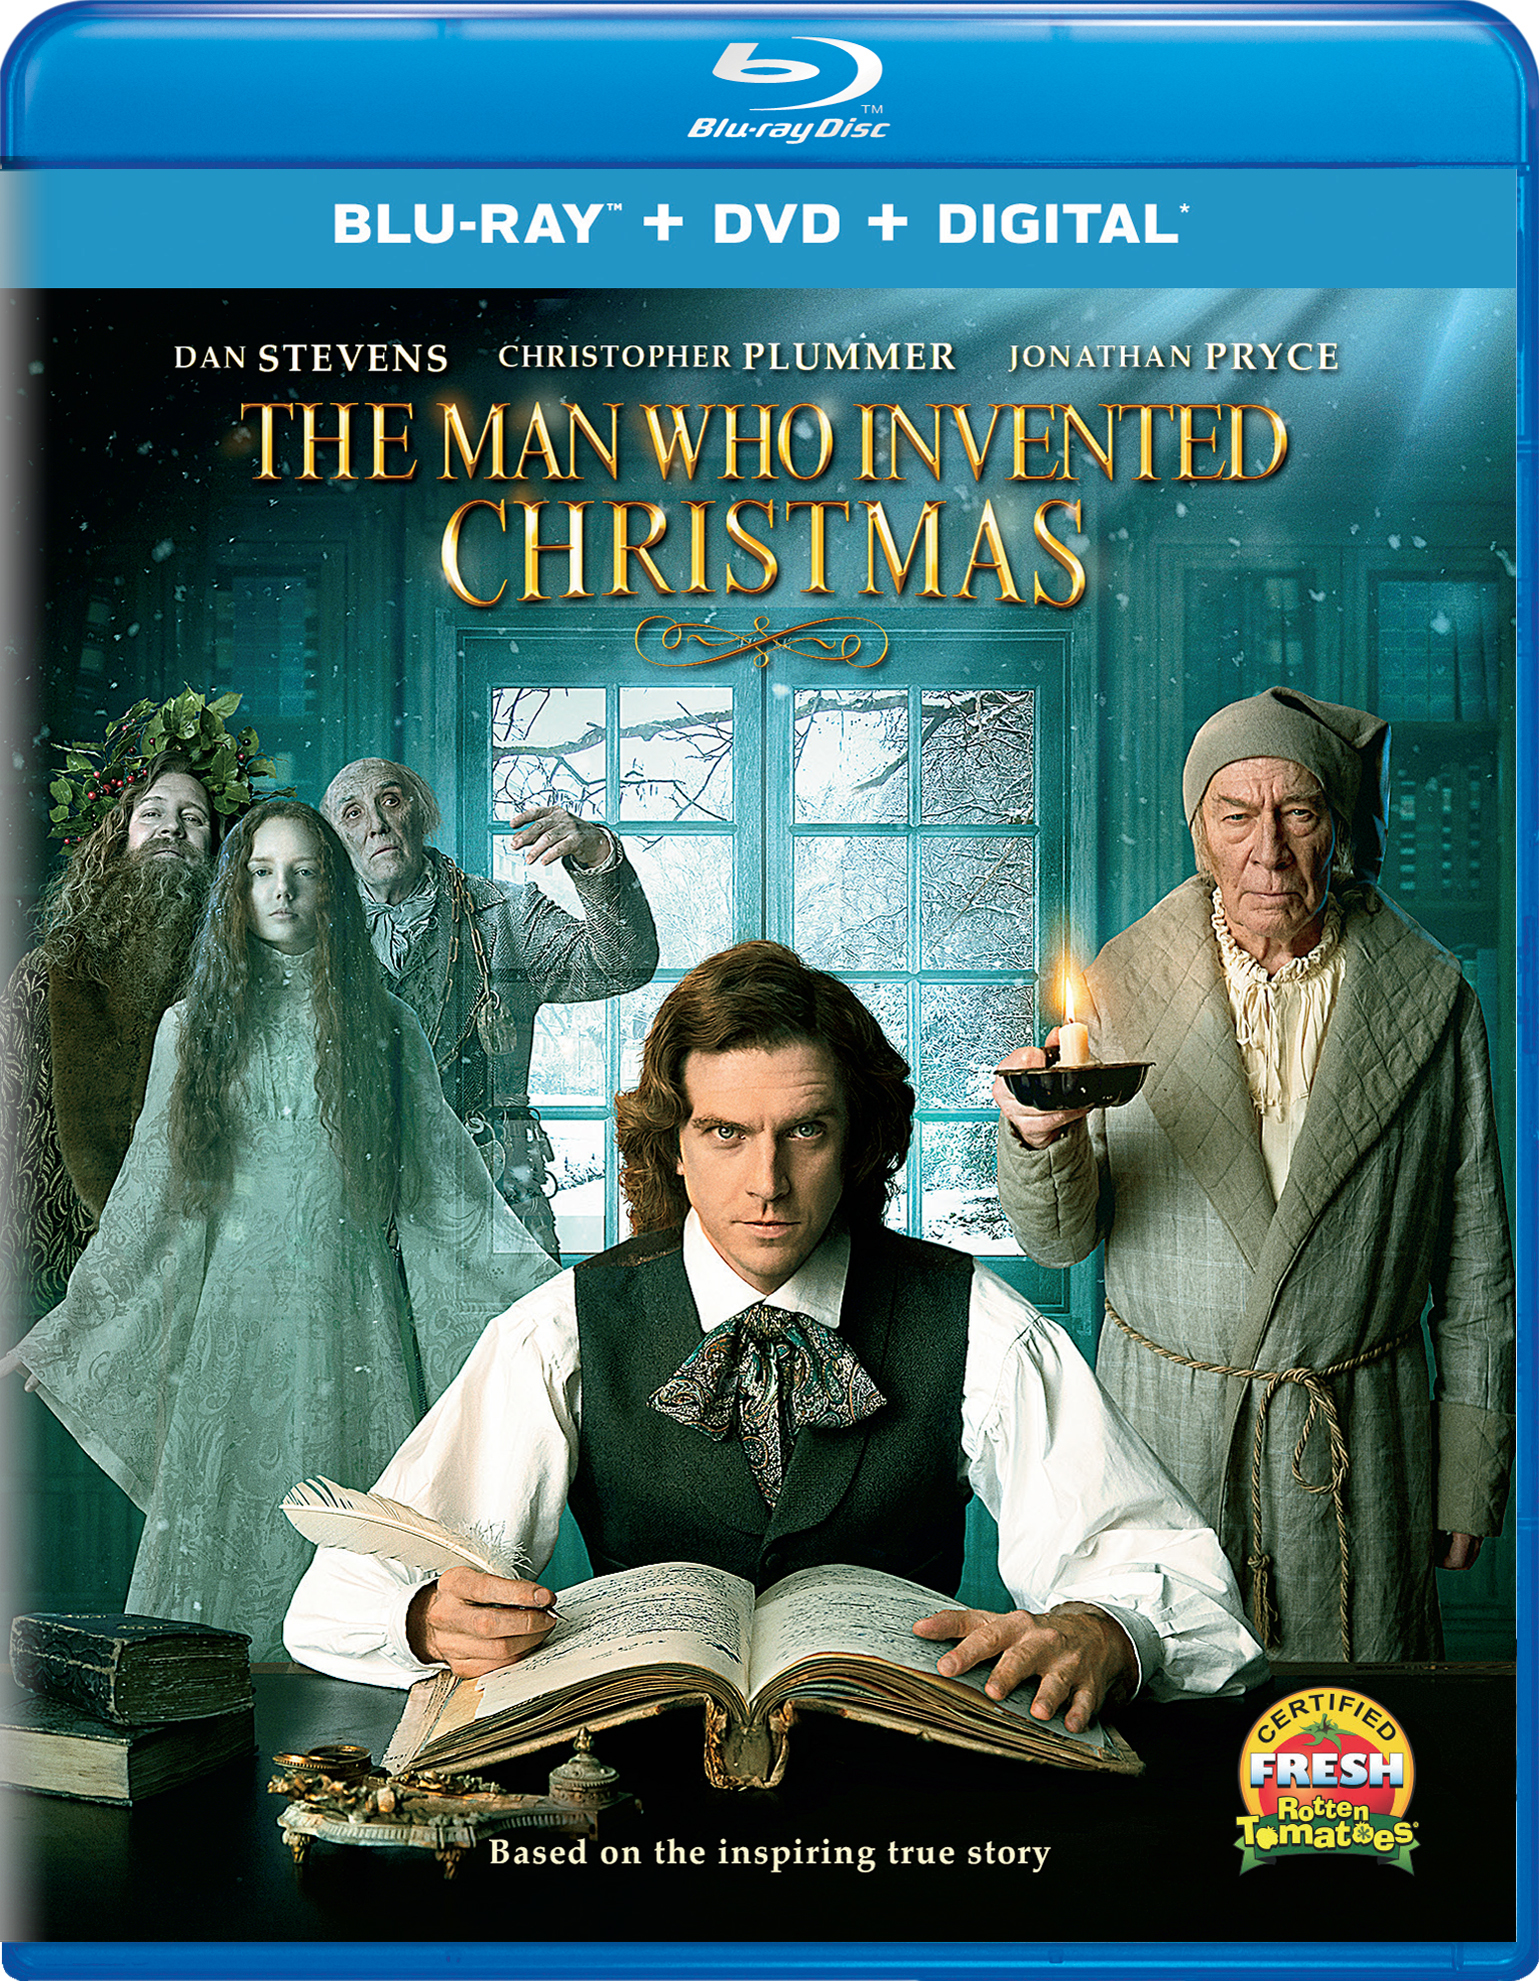 The Man Who Invented Christmas (2017) poster image